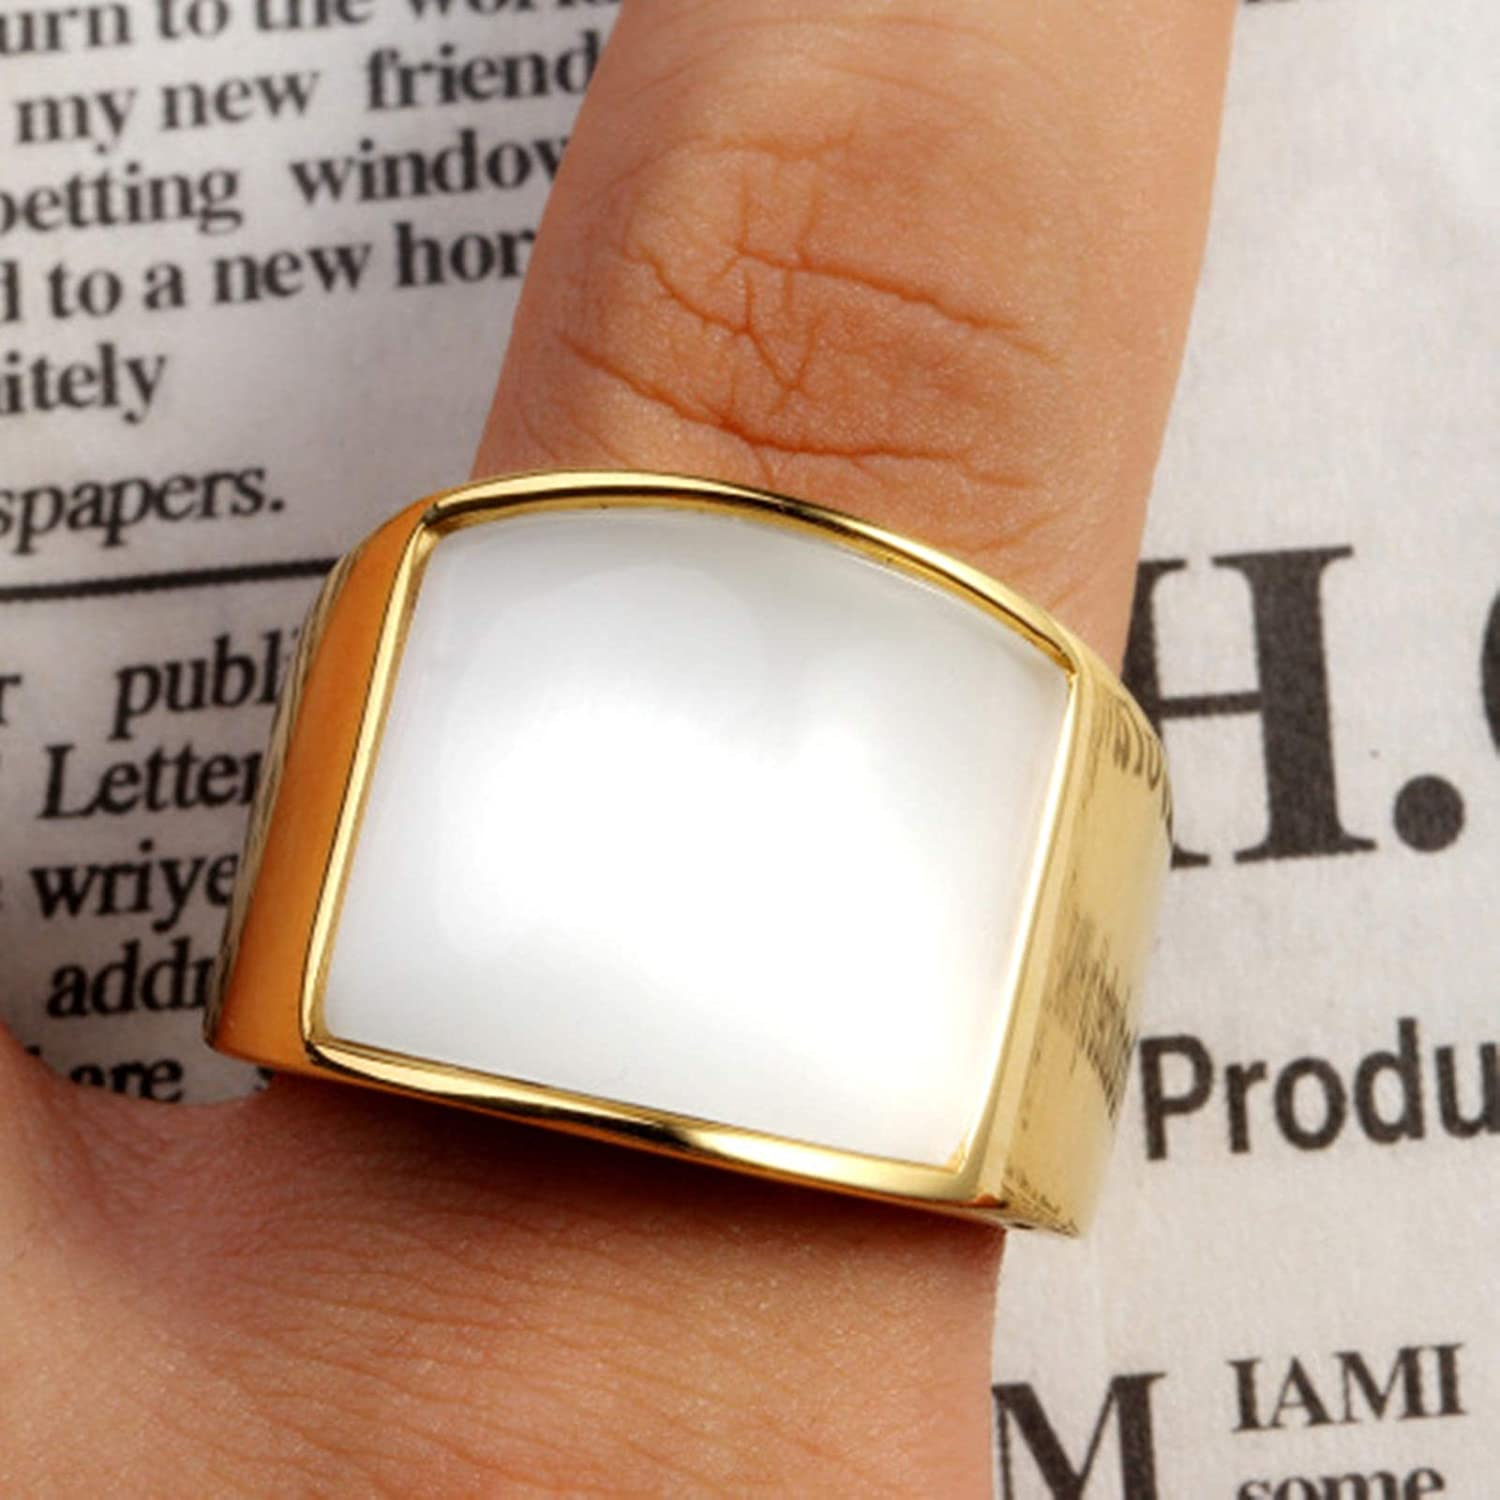 MoAndy Stainless Steel Jewelry Stainless Steel Ring for She Wedding Ring Round Size 12